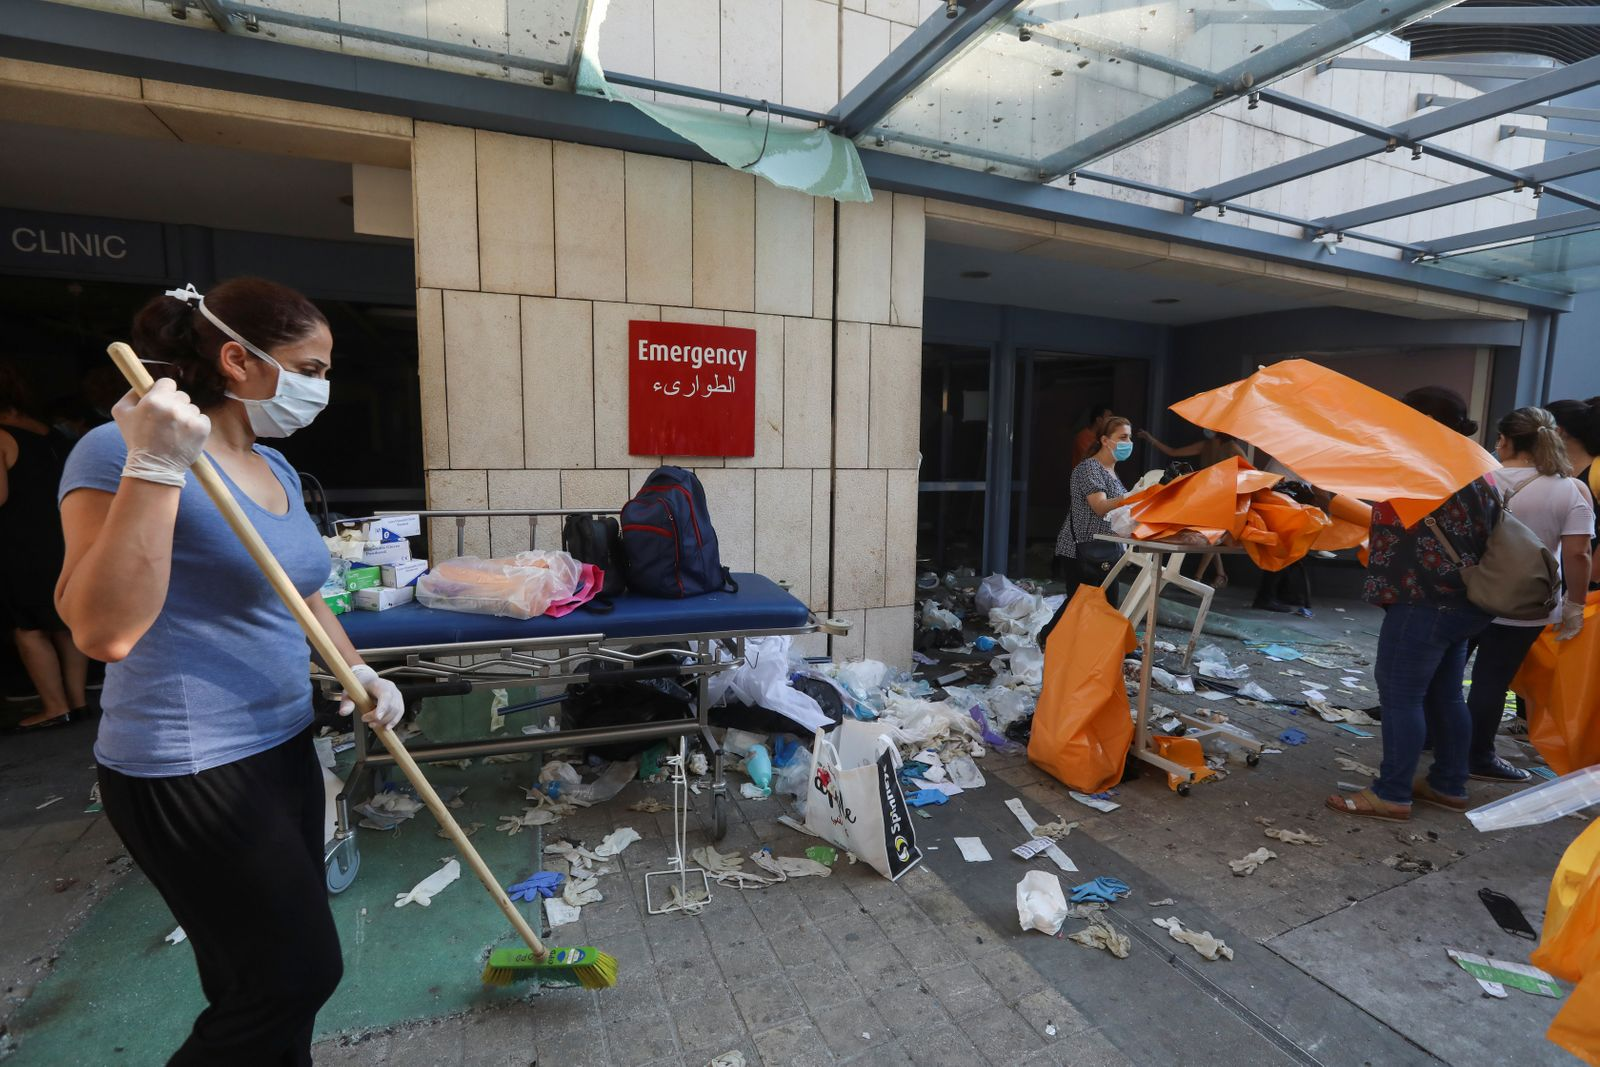 A woman sweeps at a damaged hospital following Tuesday's blast, in Beirut